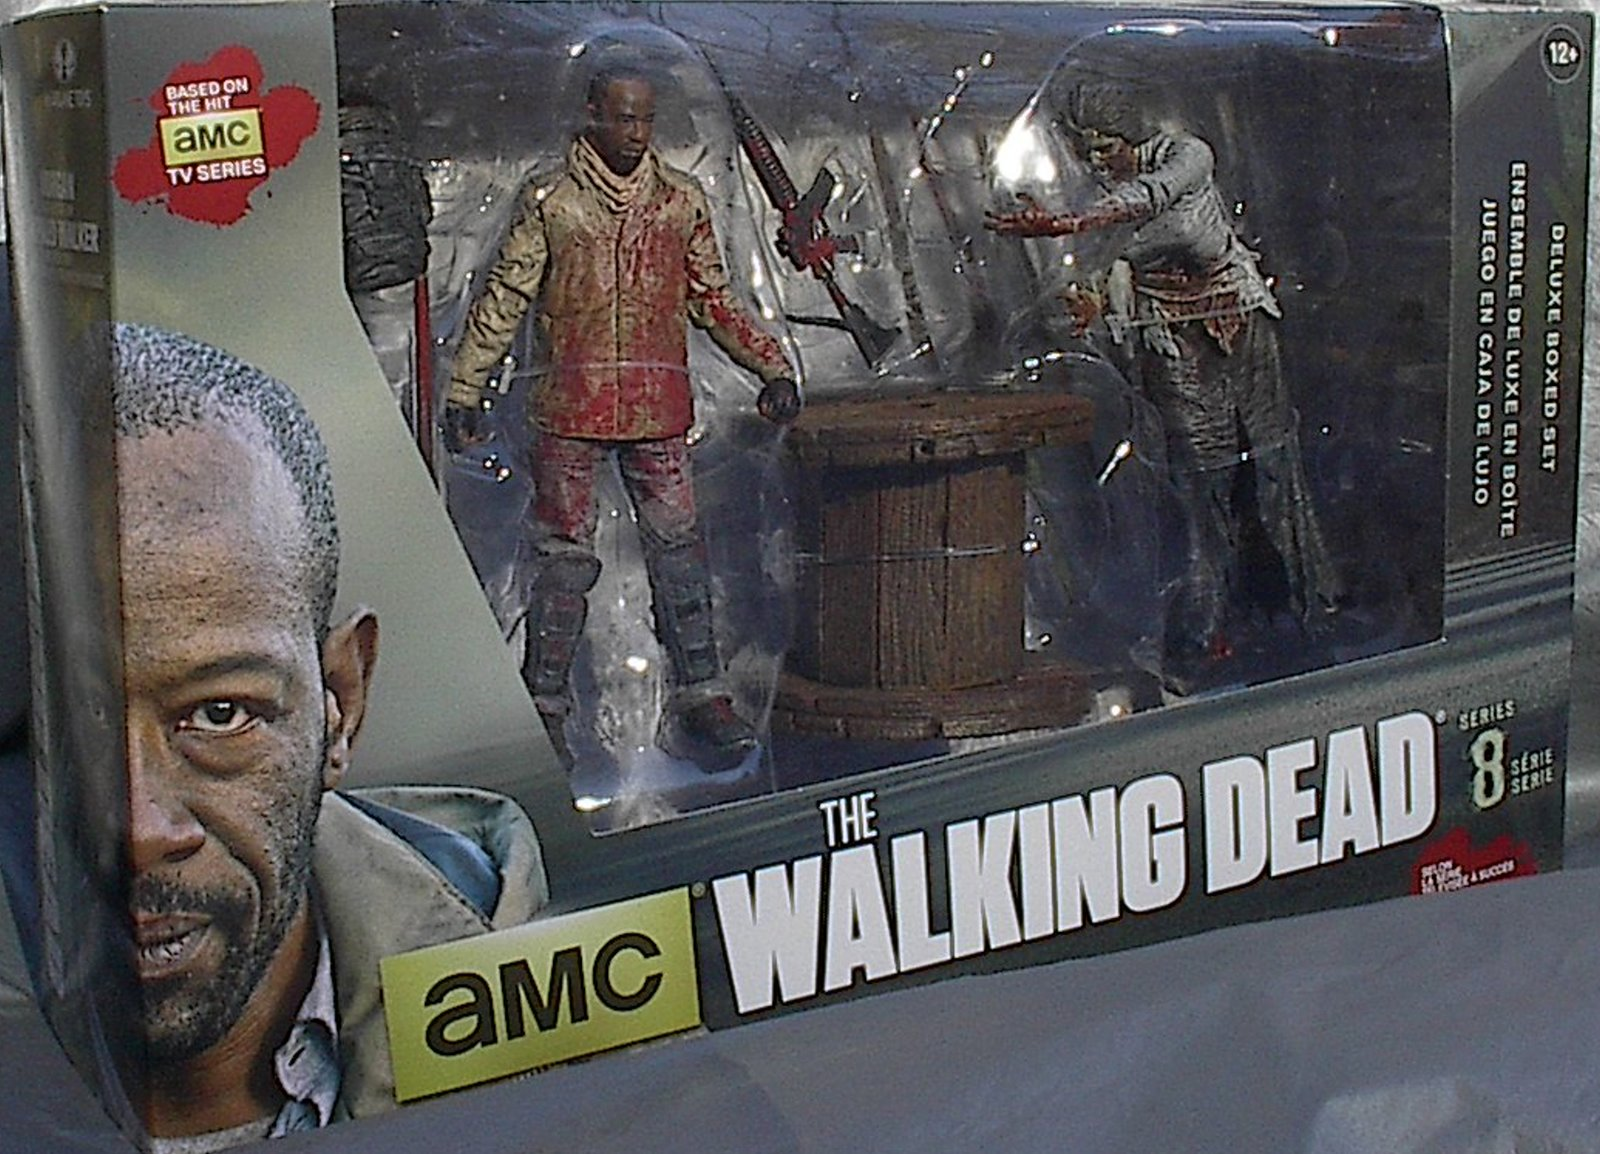 Morgan with Impaled WalkerTV Series The Walking Dead McFarlane Deluxe Box Set